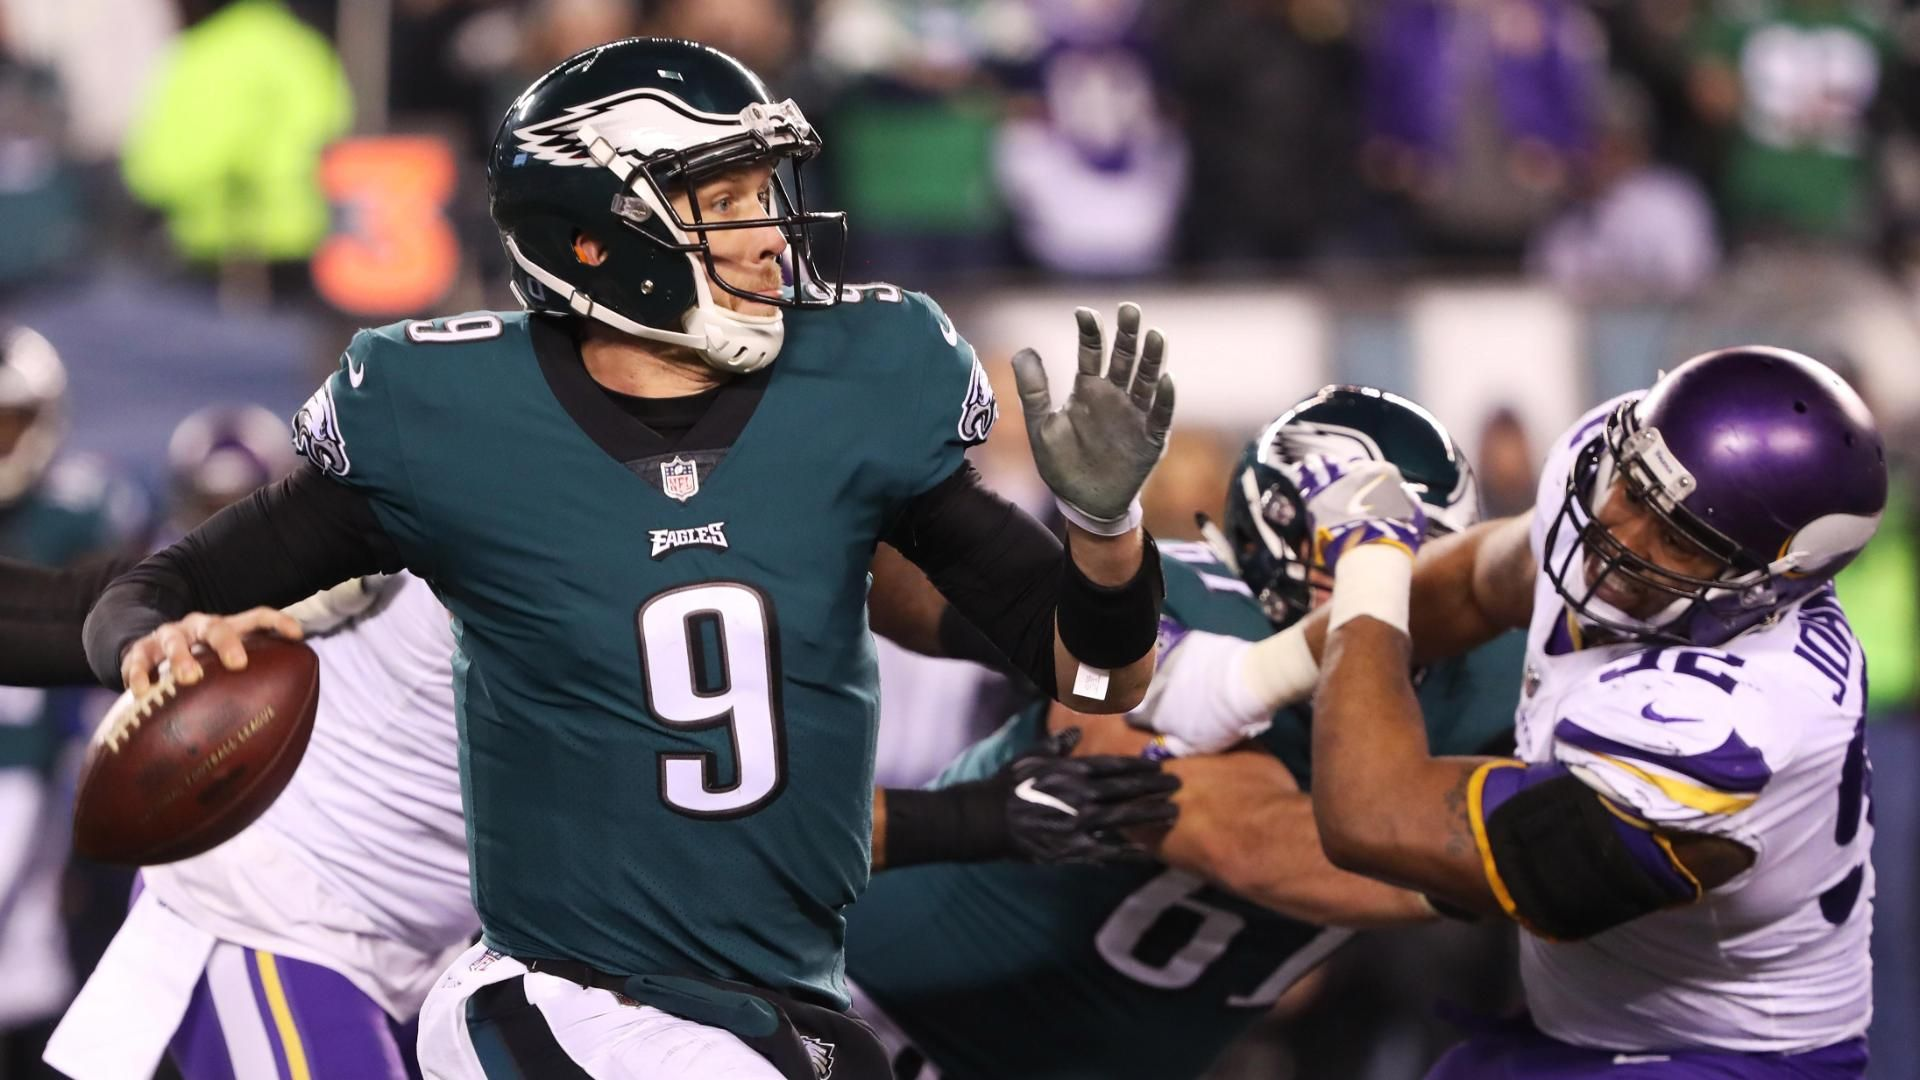 Eagles fans can believe in Foles